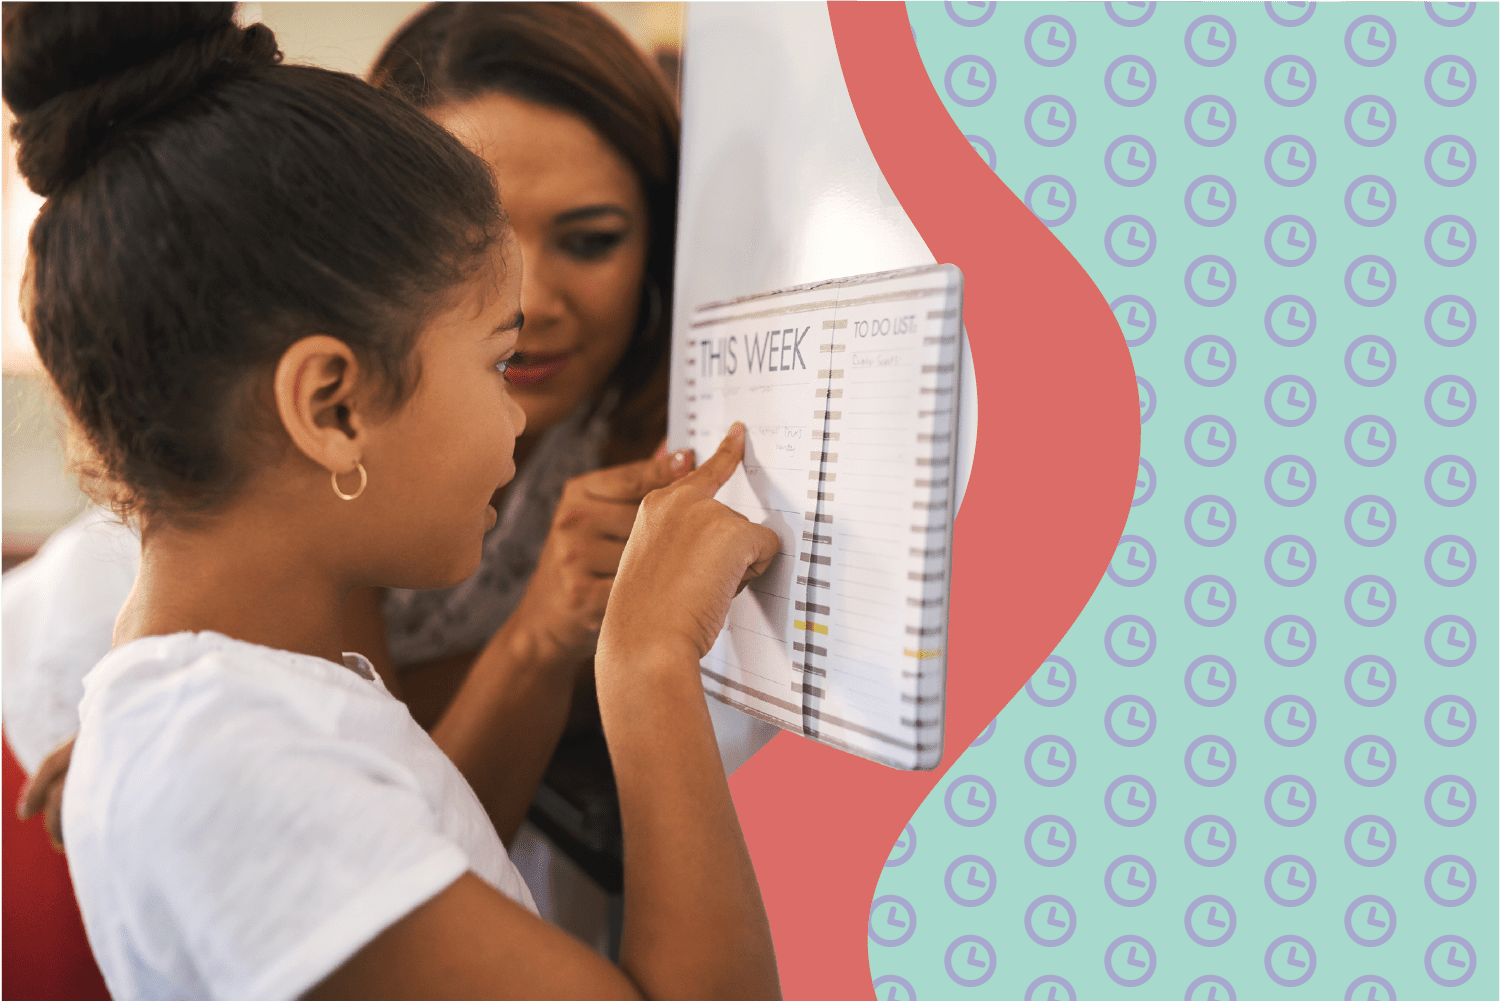 Girl looking at calendar with mother looking over her shoulder